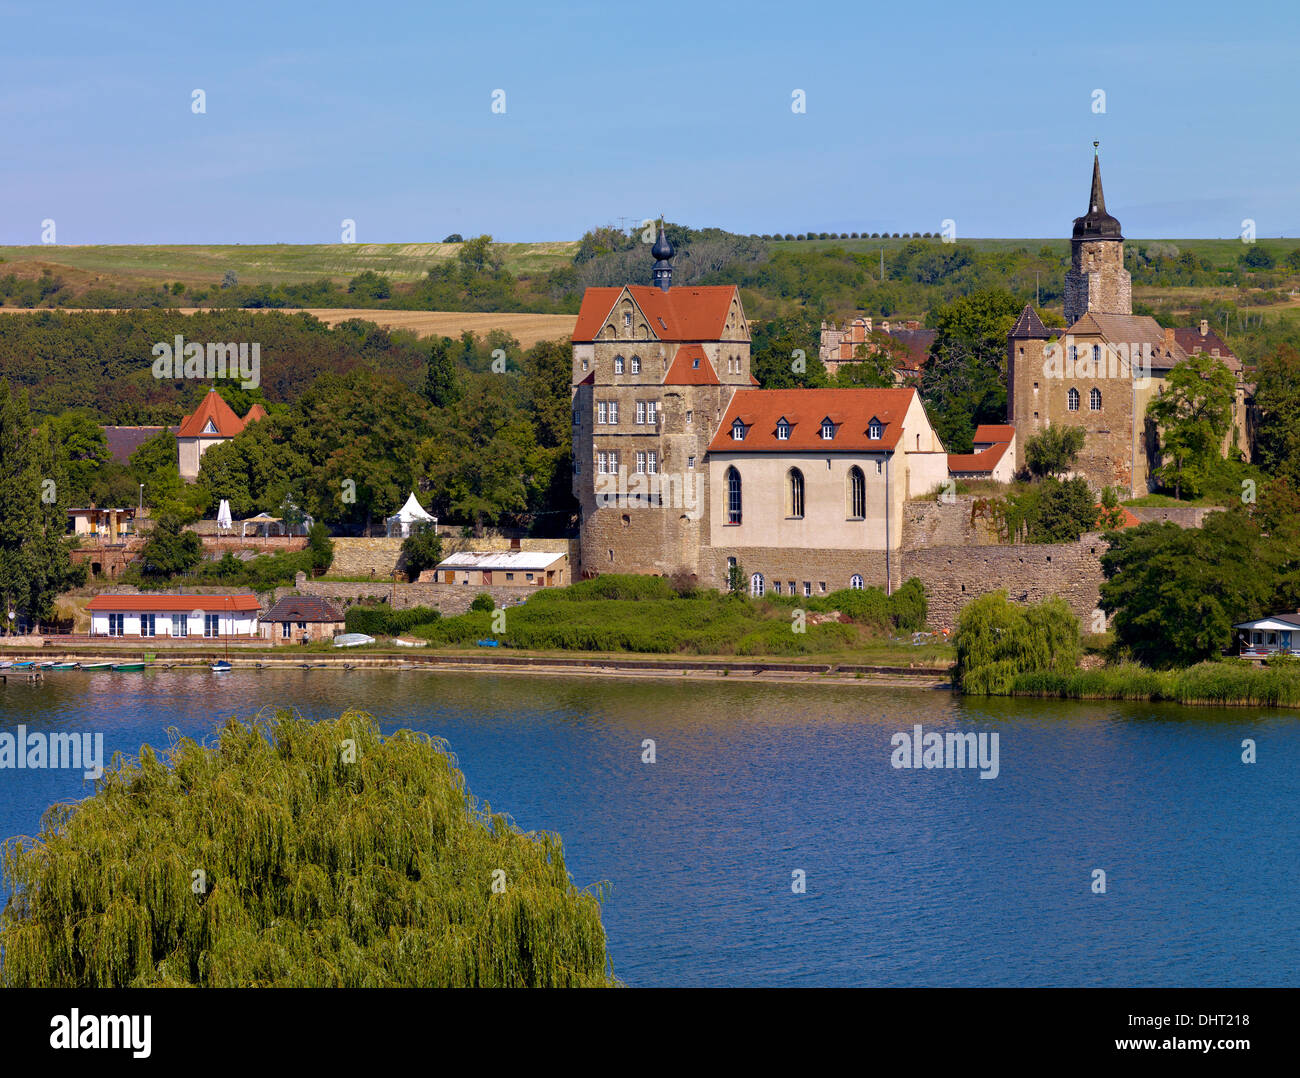 Seeburg Castle at Lake Süßer See, Mansfeld region, Saxony-Anhalt, Germany - Stock Image